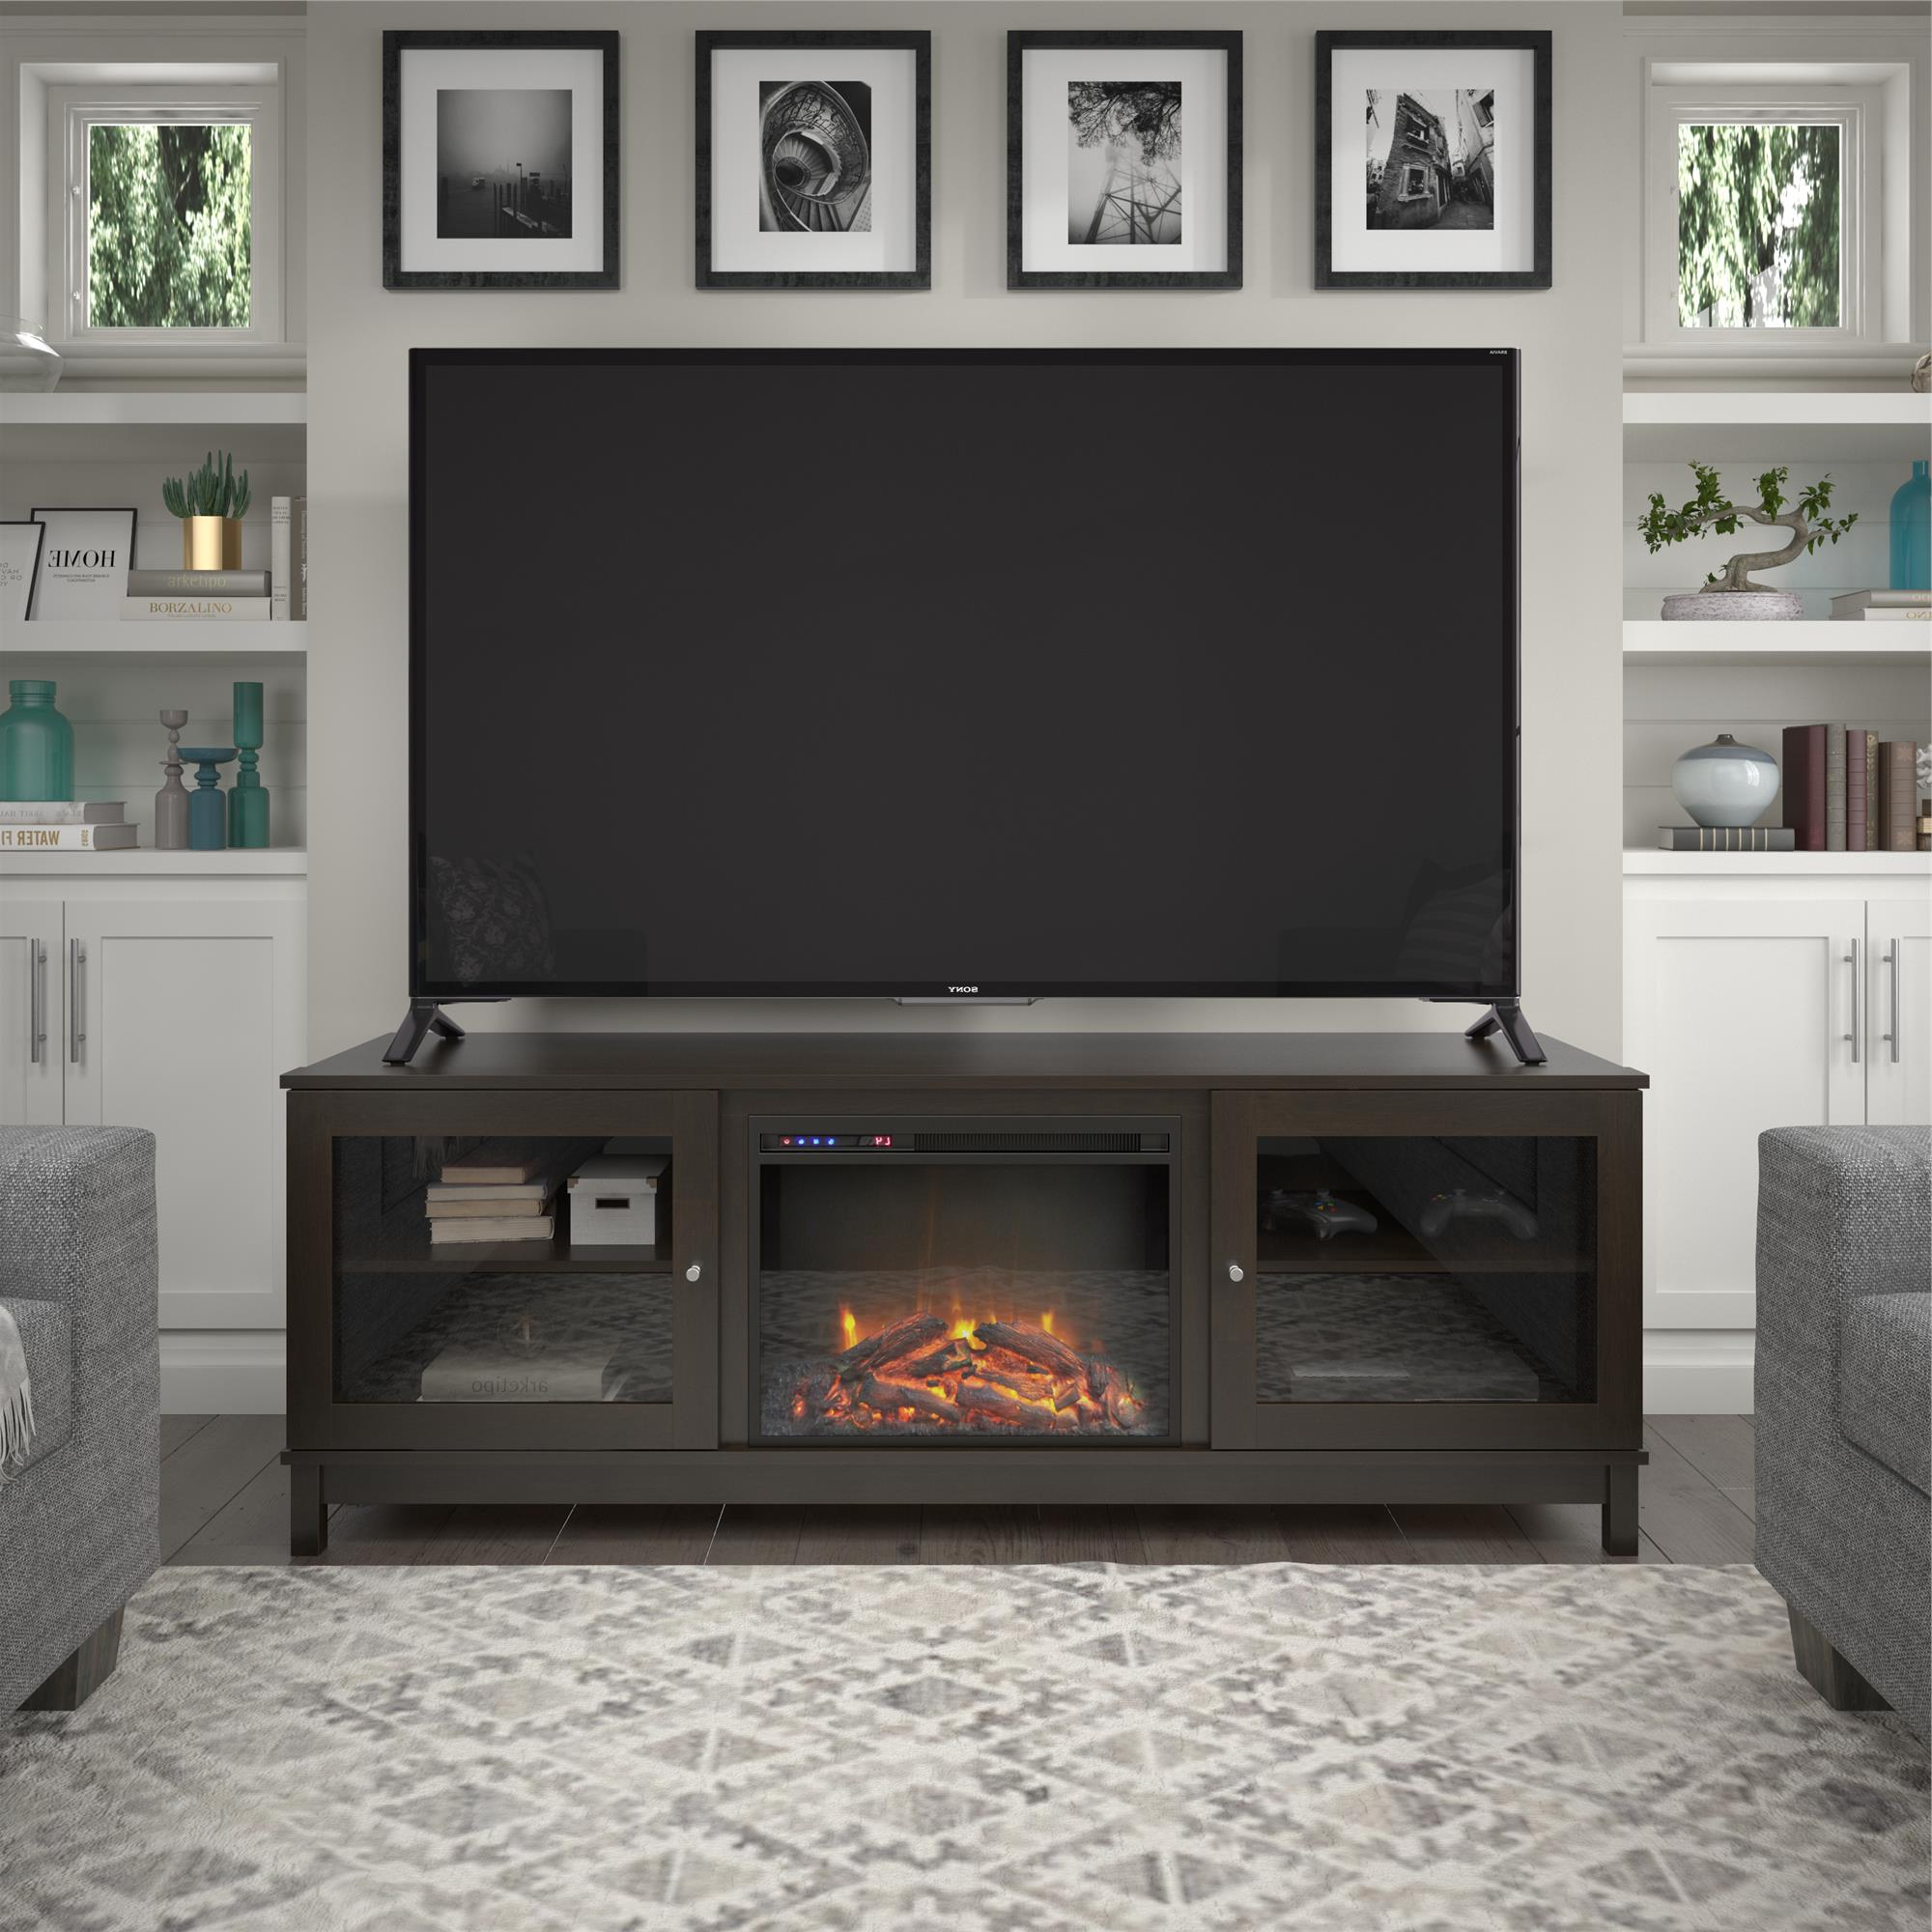 """Preferred Broward Tv Stands For Tvs Up To 70"""" With Ameriwood Home Swanson Fireplace Tv Stand For Tvs Up To  (View 7 of 25)"""